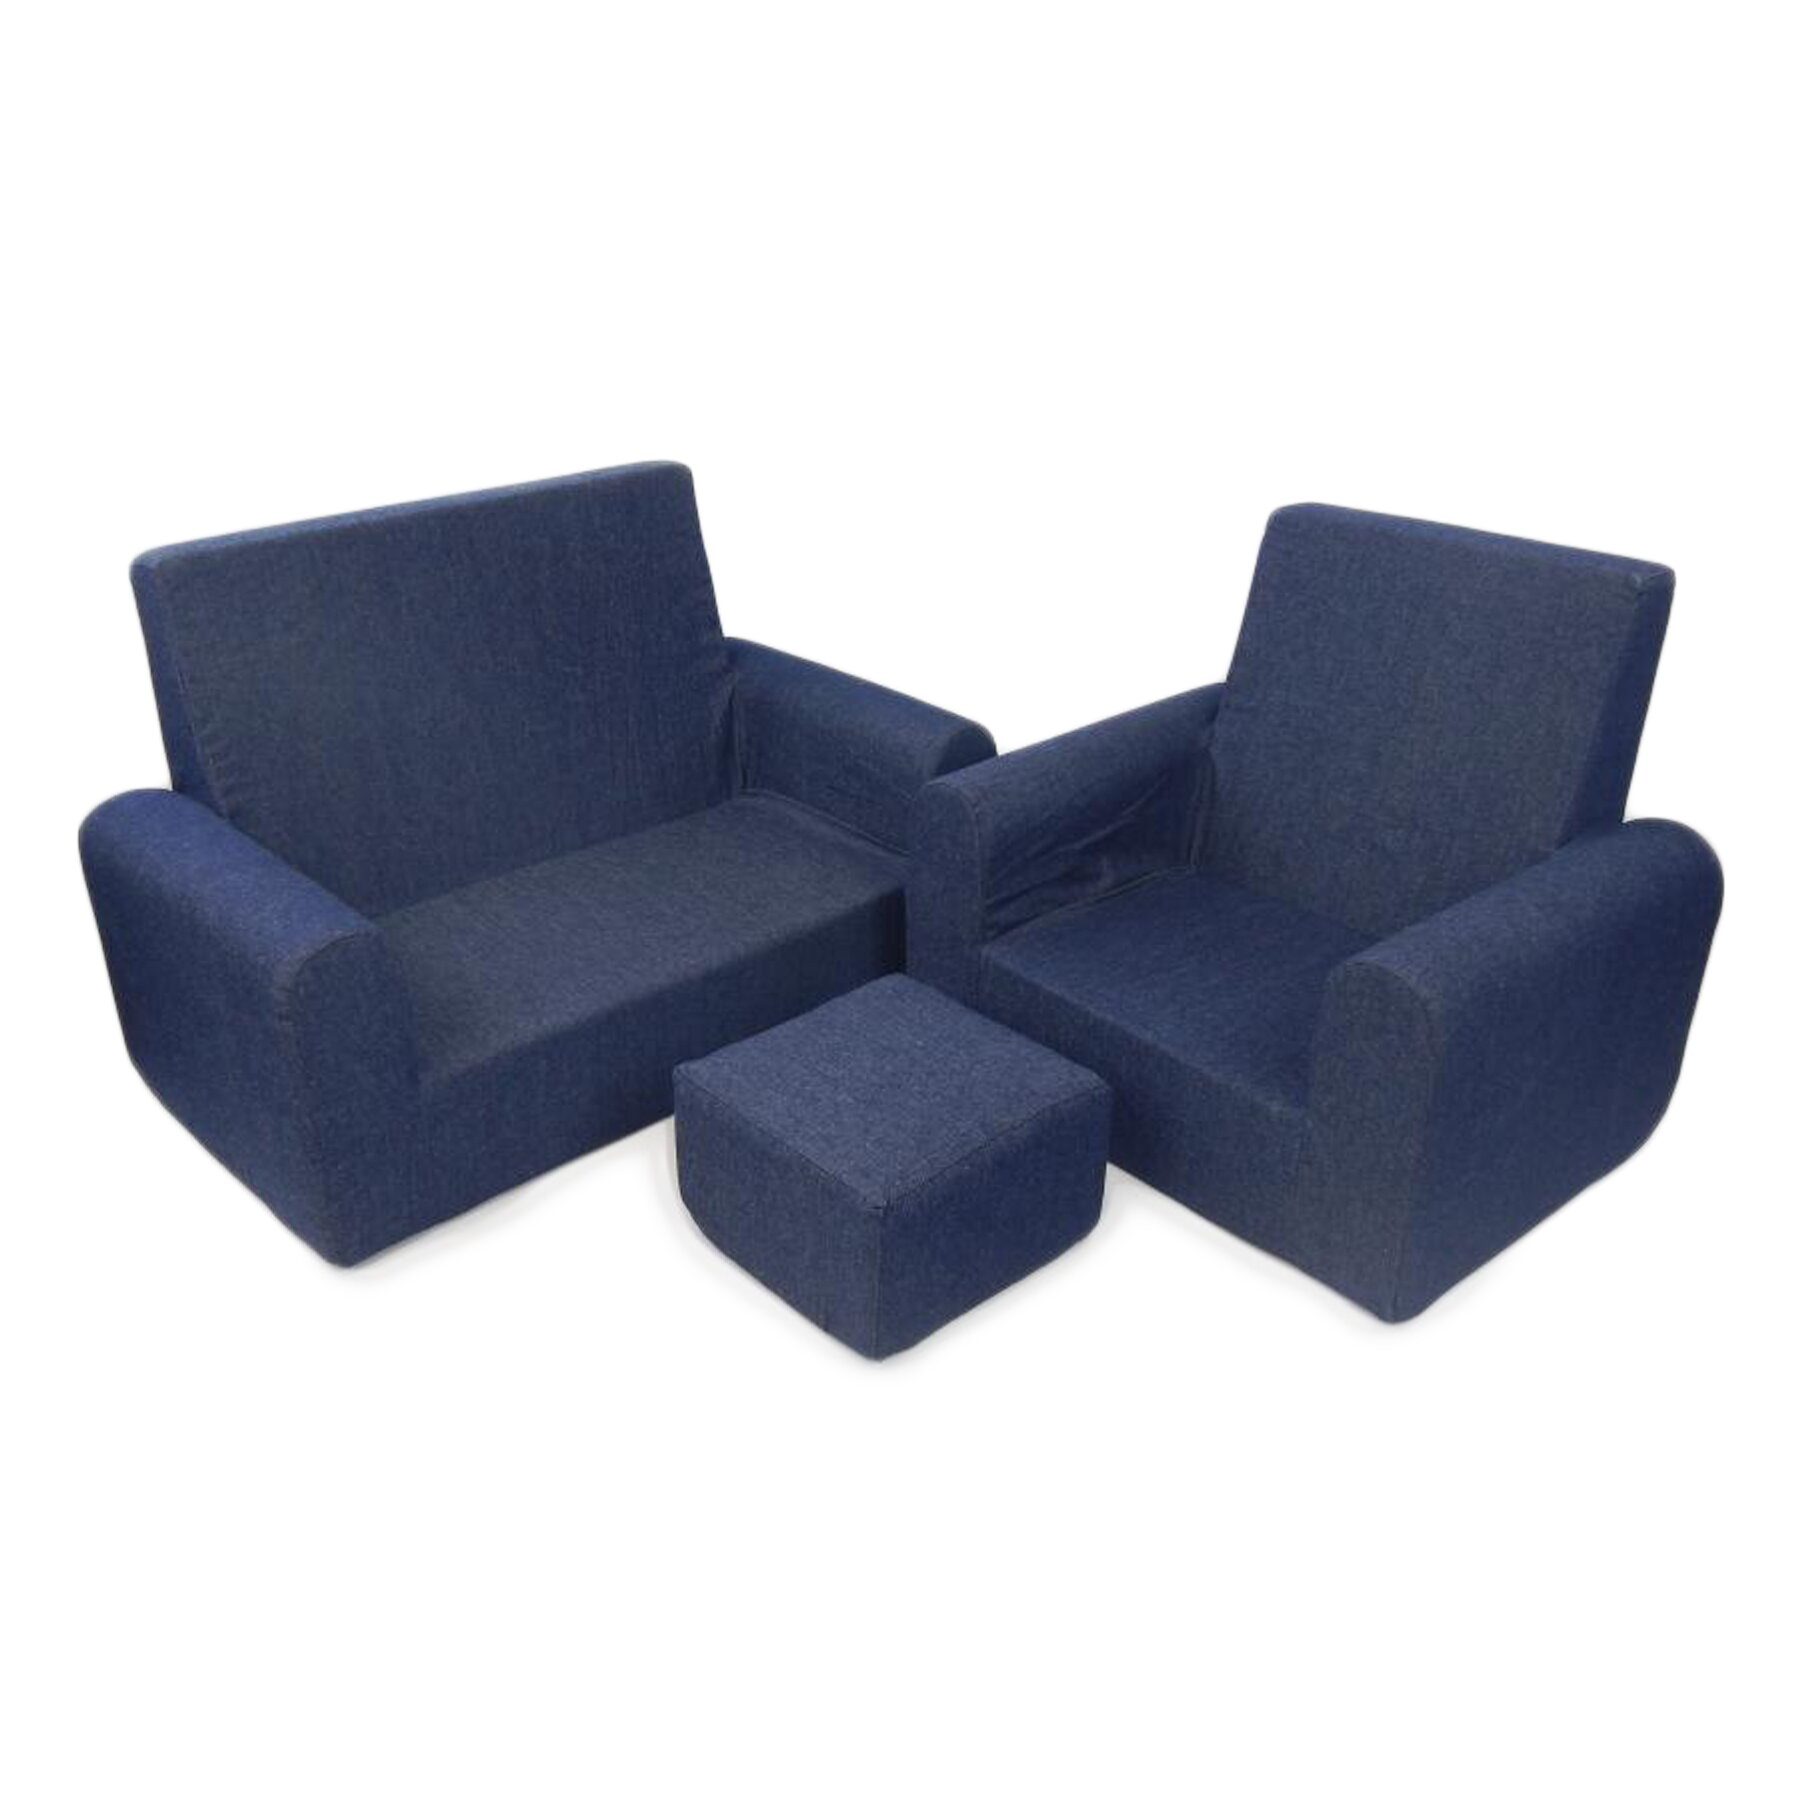 Fun Furnishings 3 Piece Kids Sofa Chair and Ottoman SetReviews